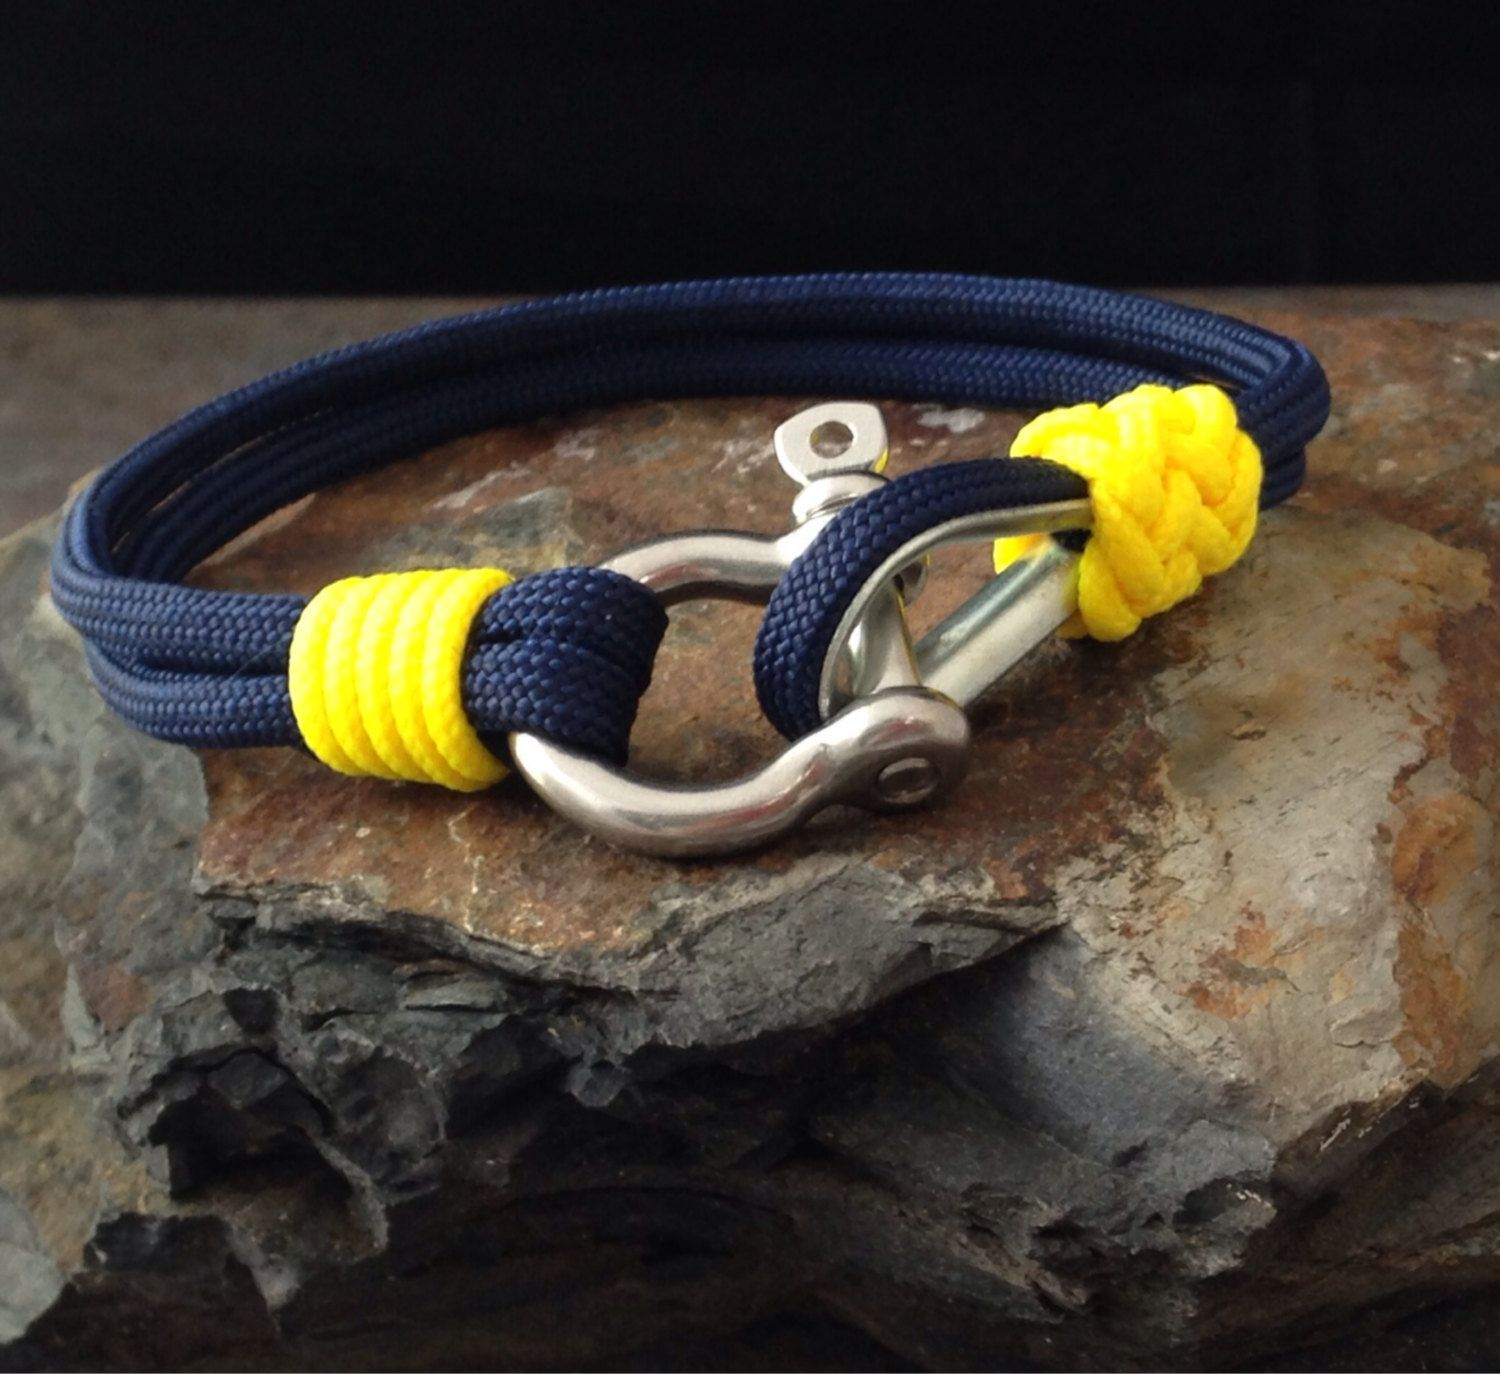 Michigan Wolverines Nautical Bracelet Paracord Bracelet With Stainless  Steel Shackle & Thimble Clasp With Whipped End And Gaucho Knot